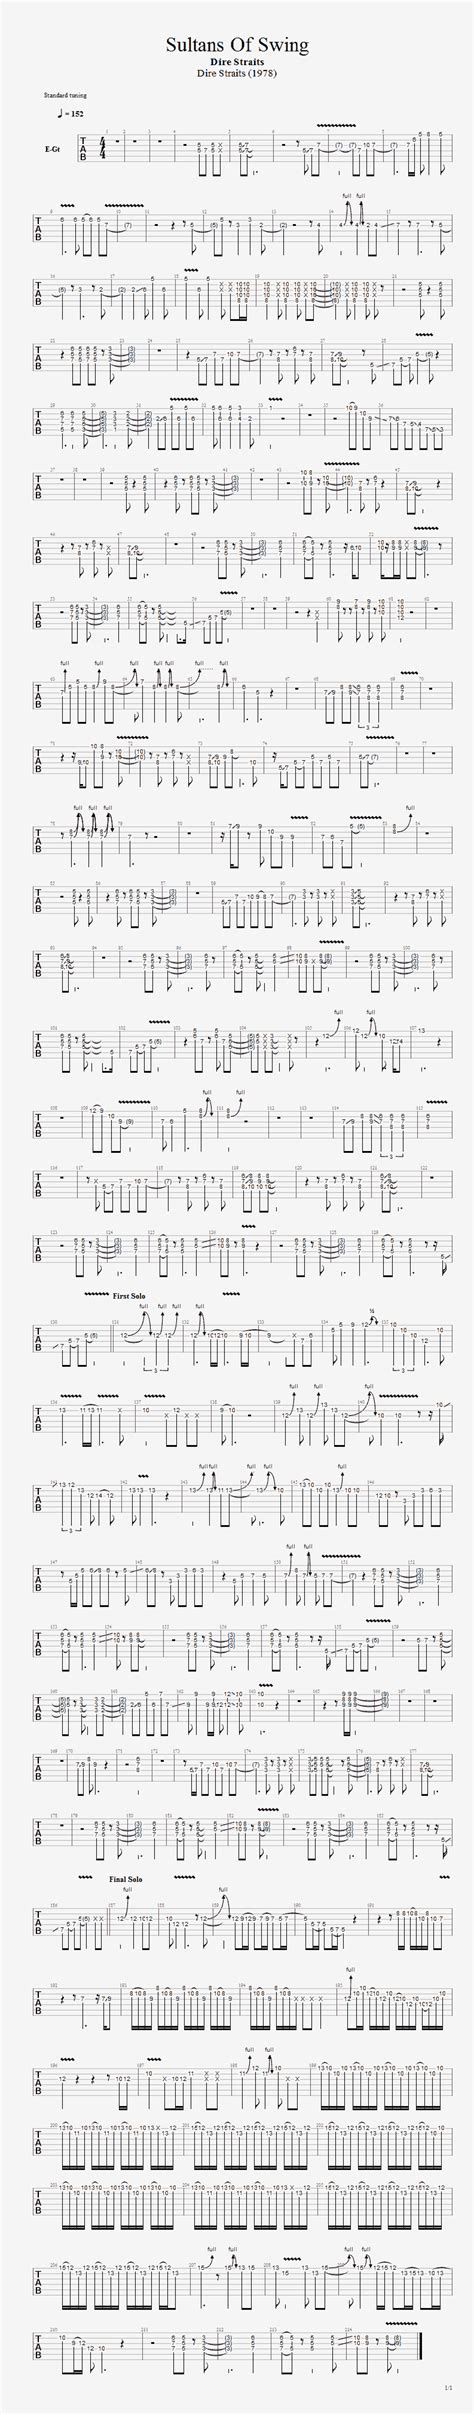 sultans of swing tabs sultans of swing guitar tab guitarnick